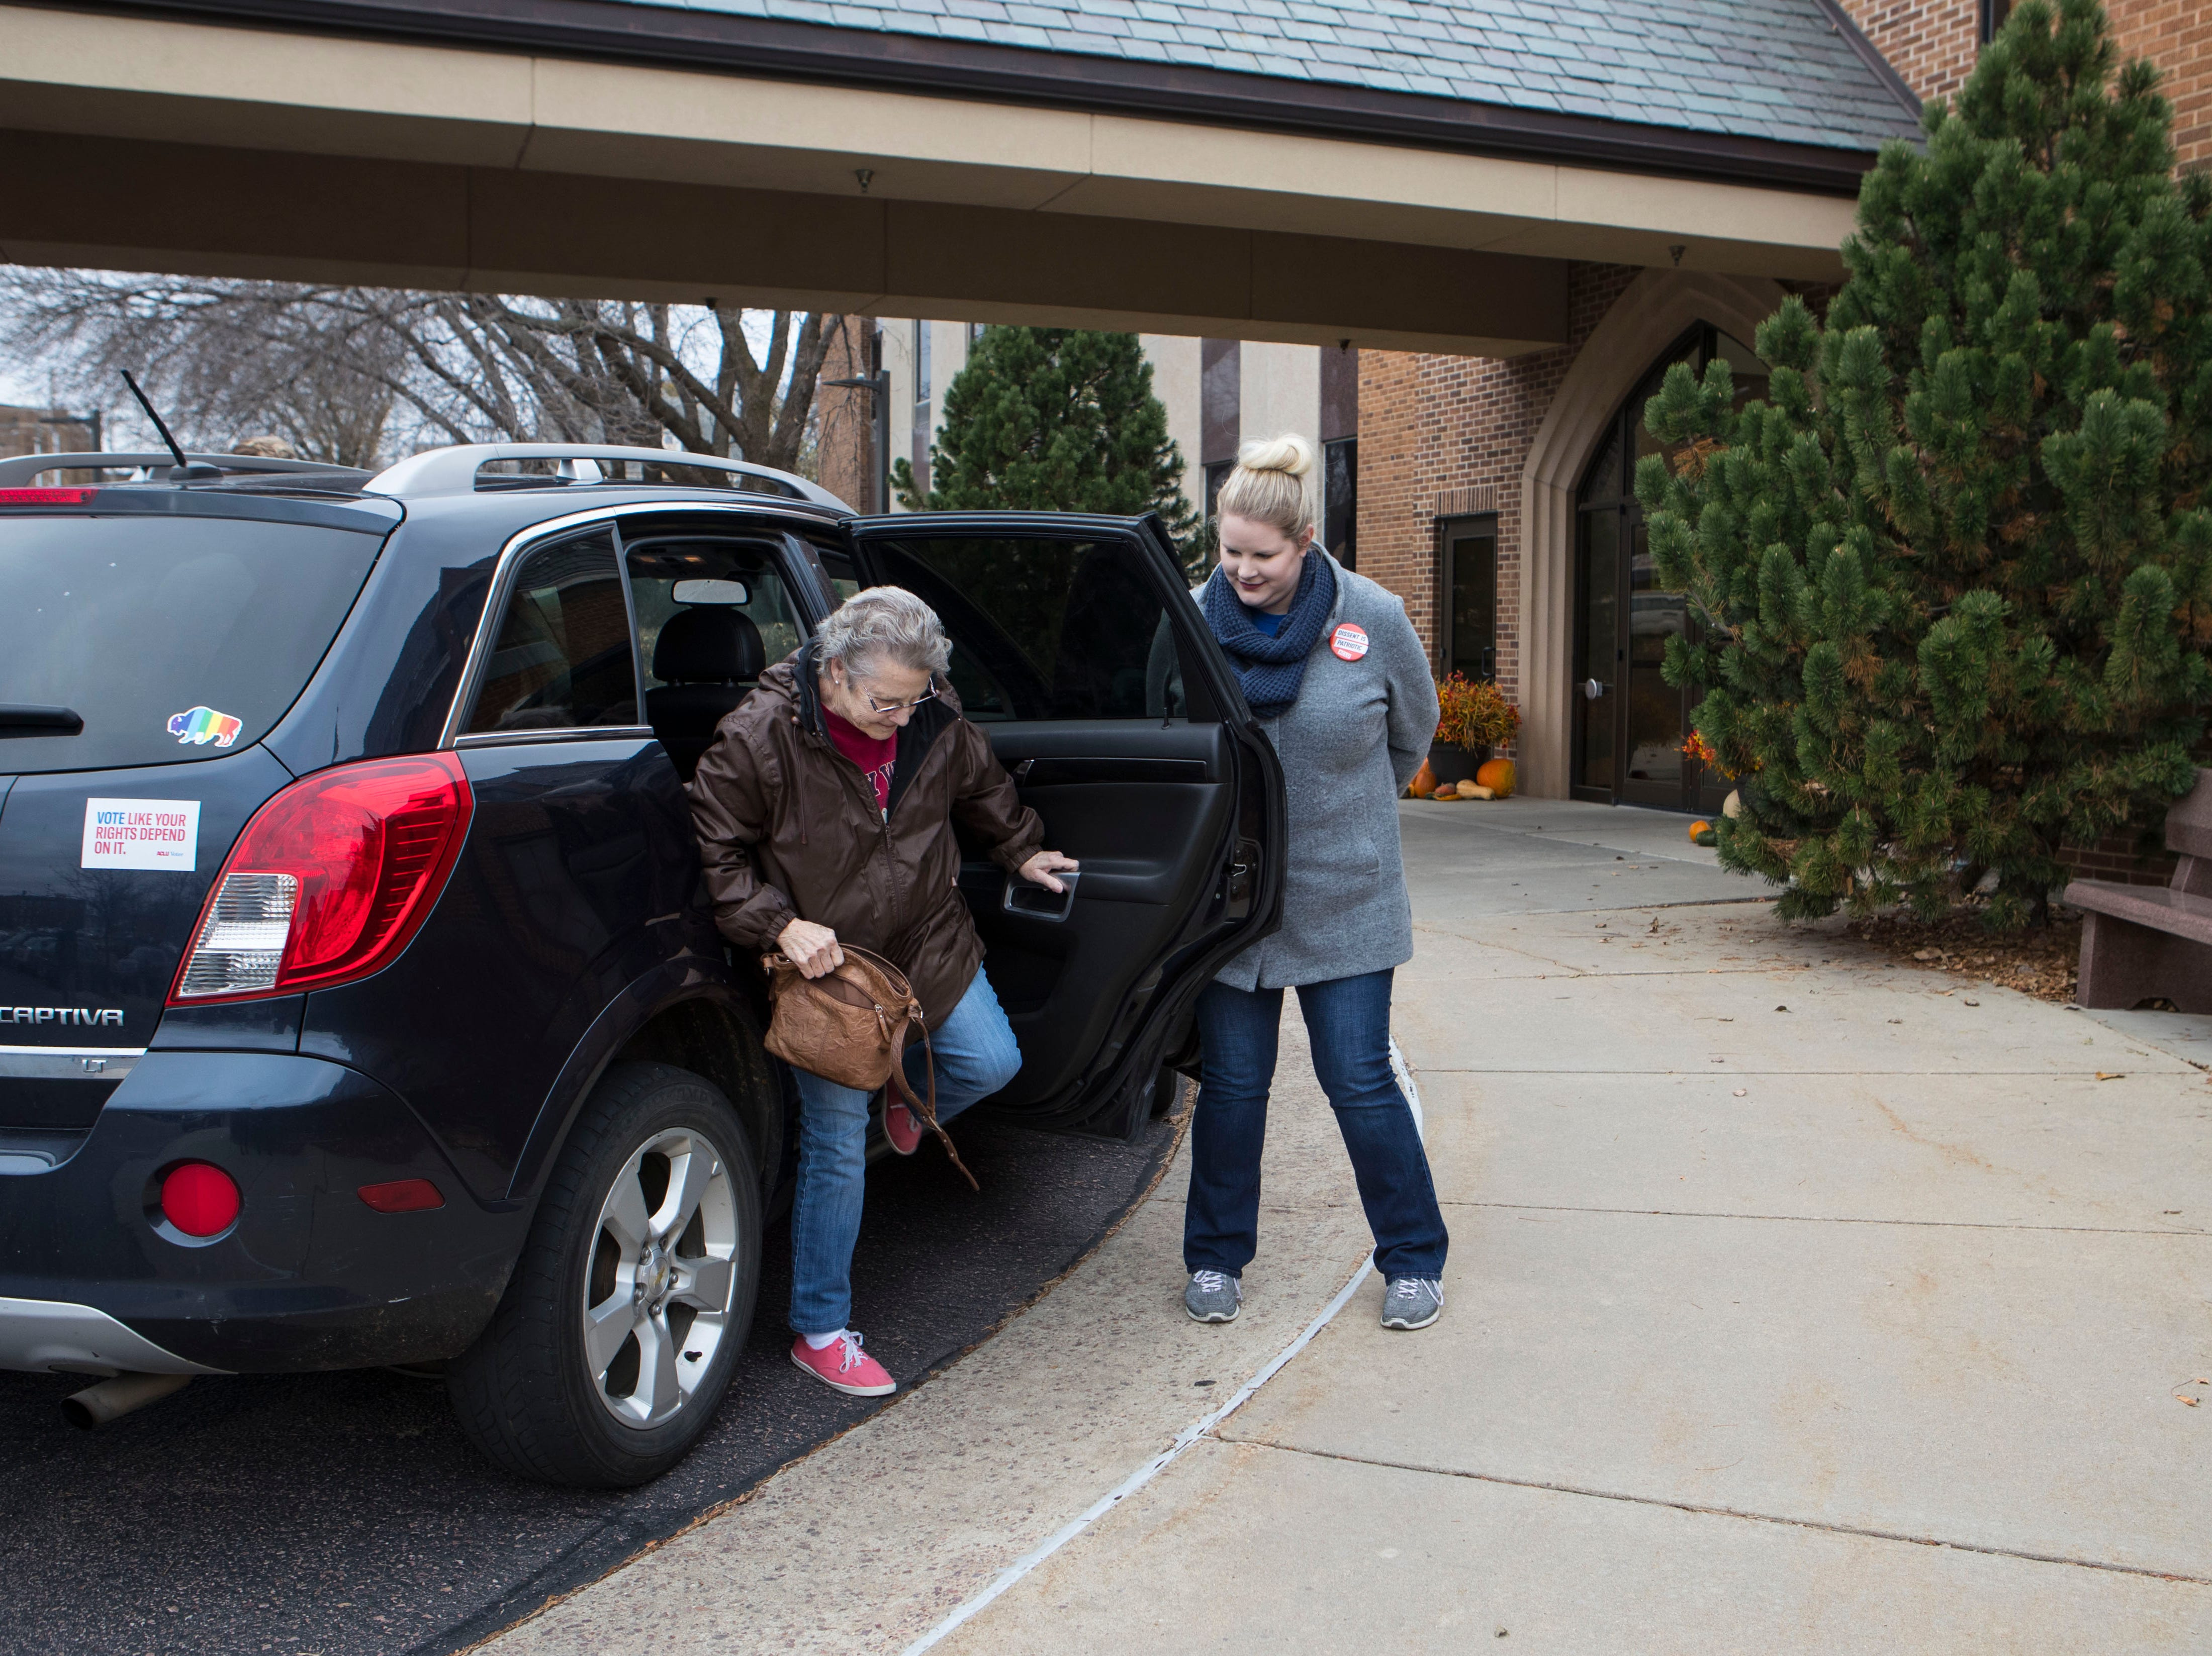 Kirsten Wichern, ACLU volunteer, opens the door for Diana Friedrichs at First Lutheran Church in Sioux Falls, S.D., Tuesday, Nov. 6, 2018. The ACLU is offering free rides to people to their voting centers.